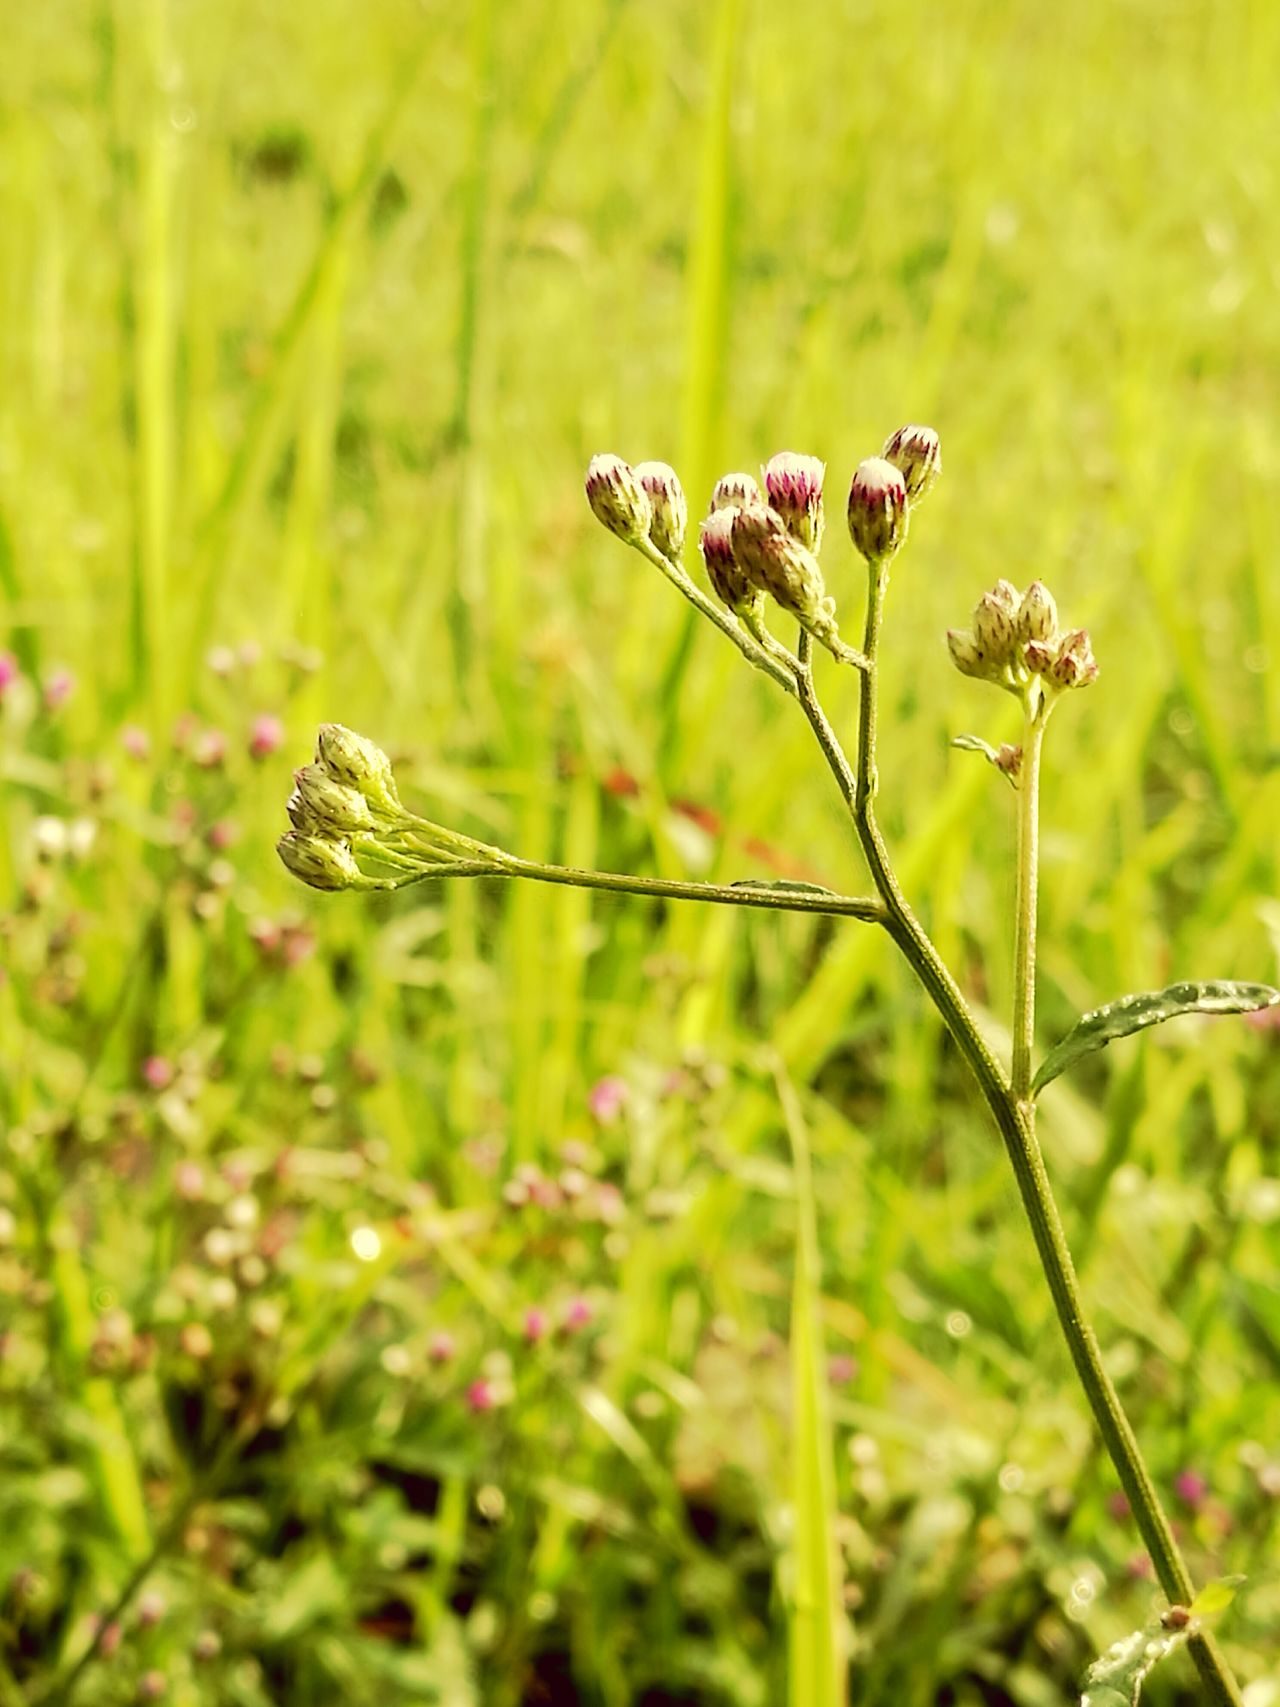 Grass flower. Grass Grass Area Grass Flowers Flower Photography Grassfield Grass Photography Flower Collection Flowerlovers Nature Photography Garden Flowers Naturelovers Flowers,Plants & Garden